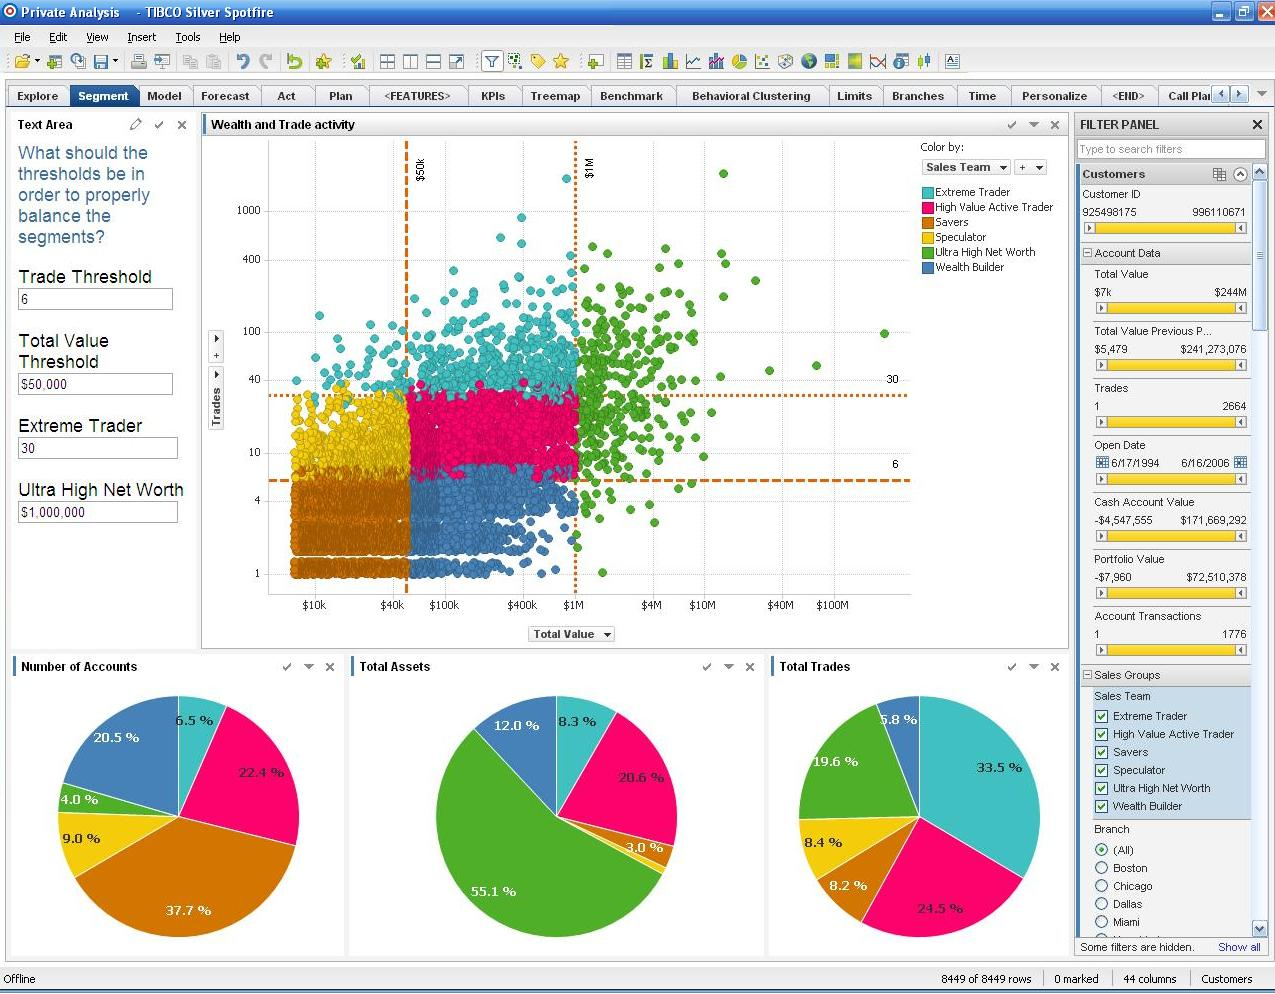 TIBCO UNVEILS CLOUD-BASED OFFERING TO MAKE ANALYTICS EASY